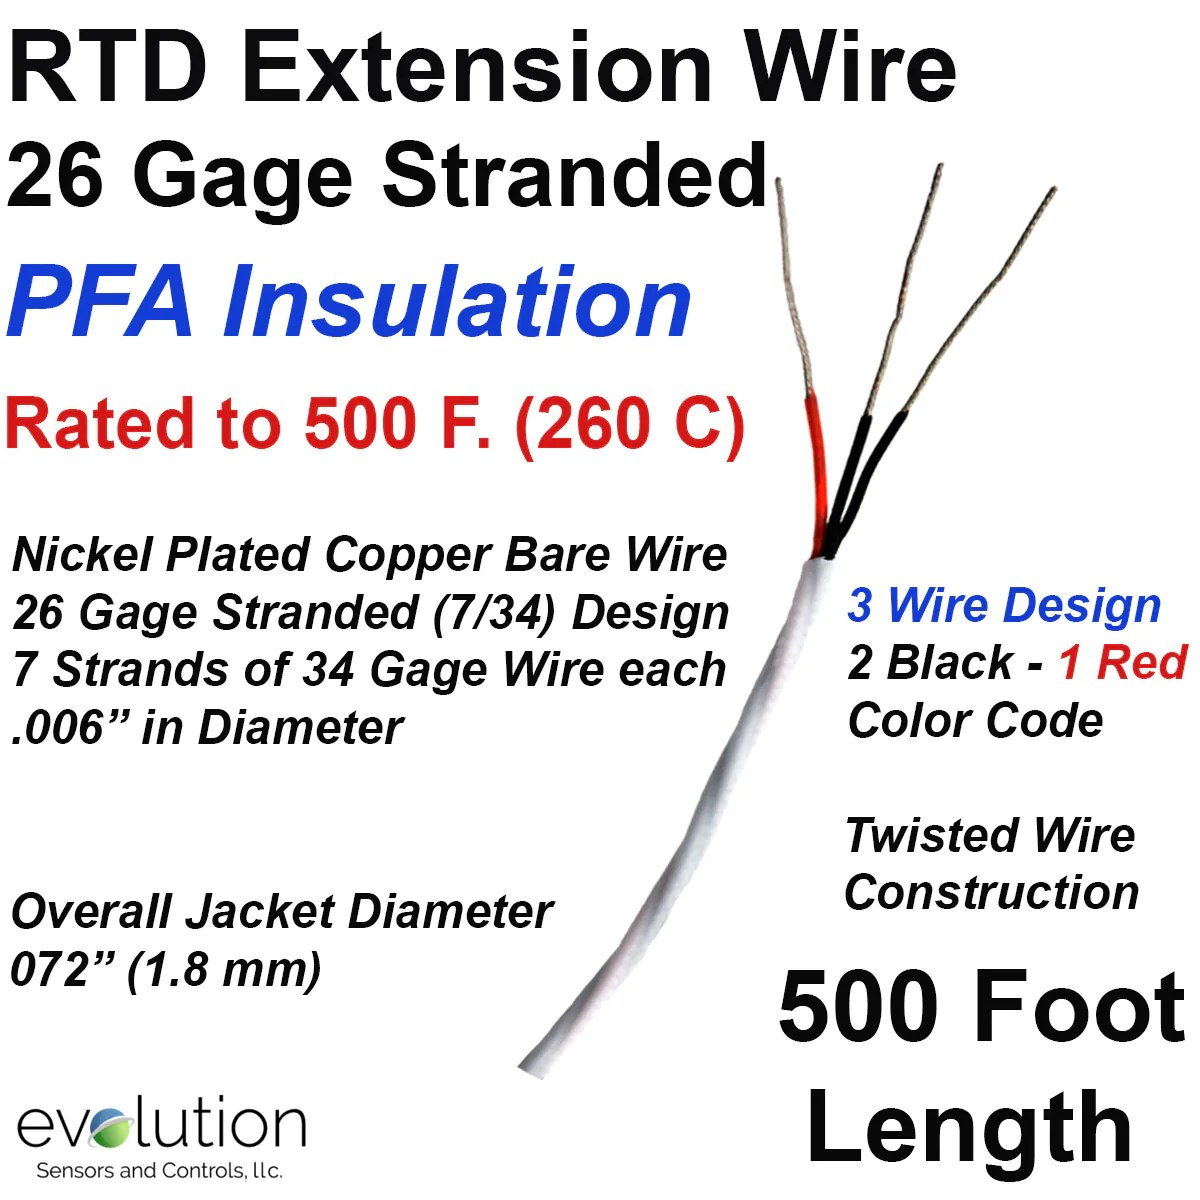 Rtd extension wire gage stranded design pfa insulated ft long also foot length rh evosensors